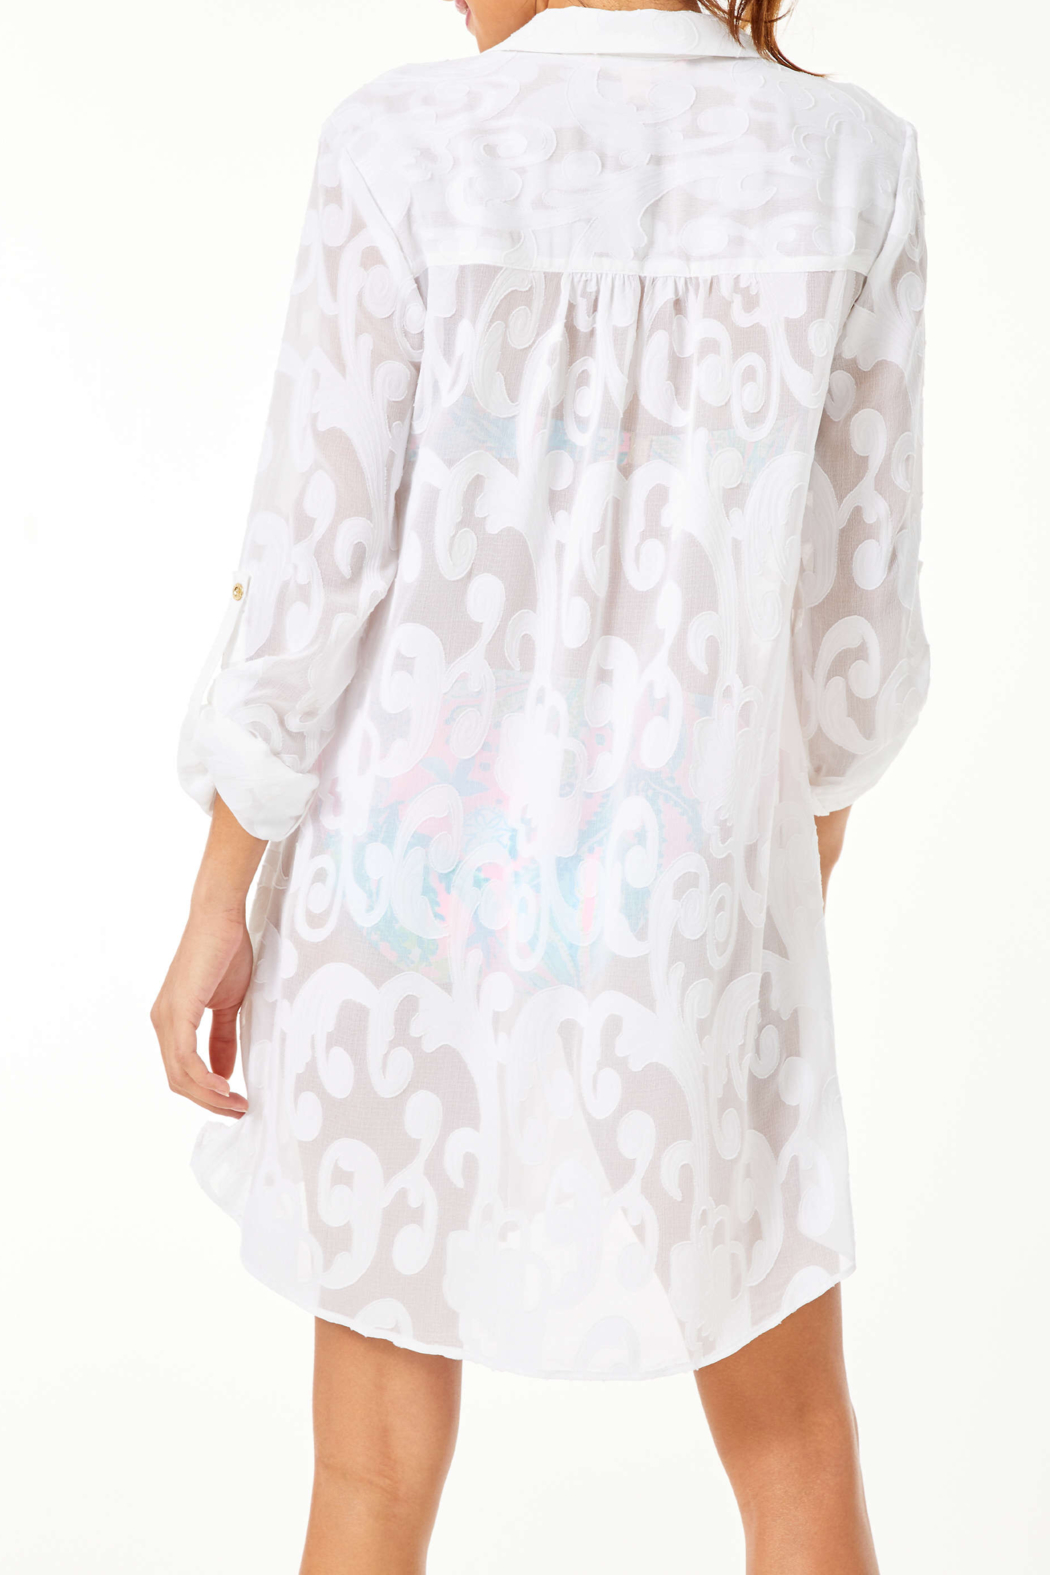 Lilly Pulitzer  Natalie Shirtdress Coverup - Front Full Image